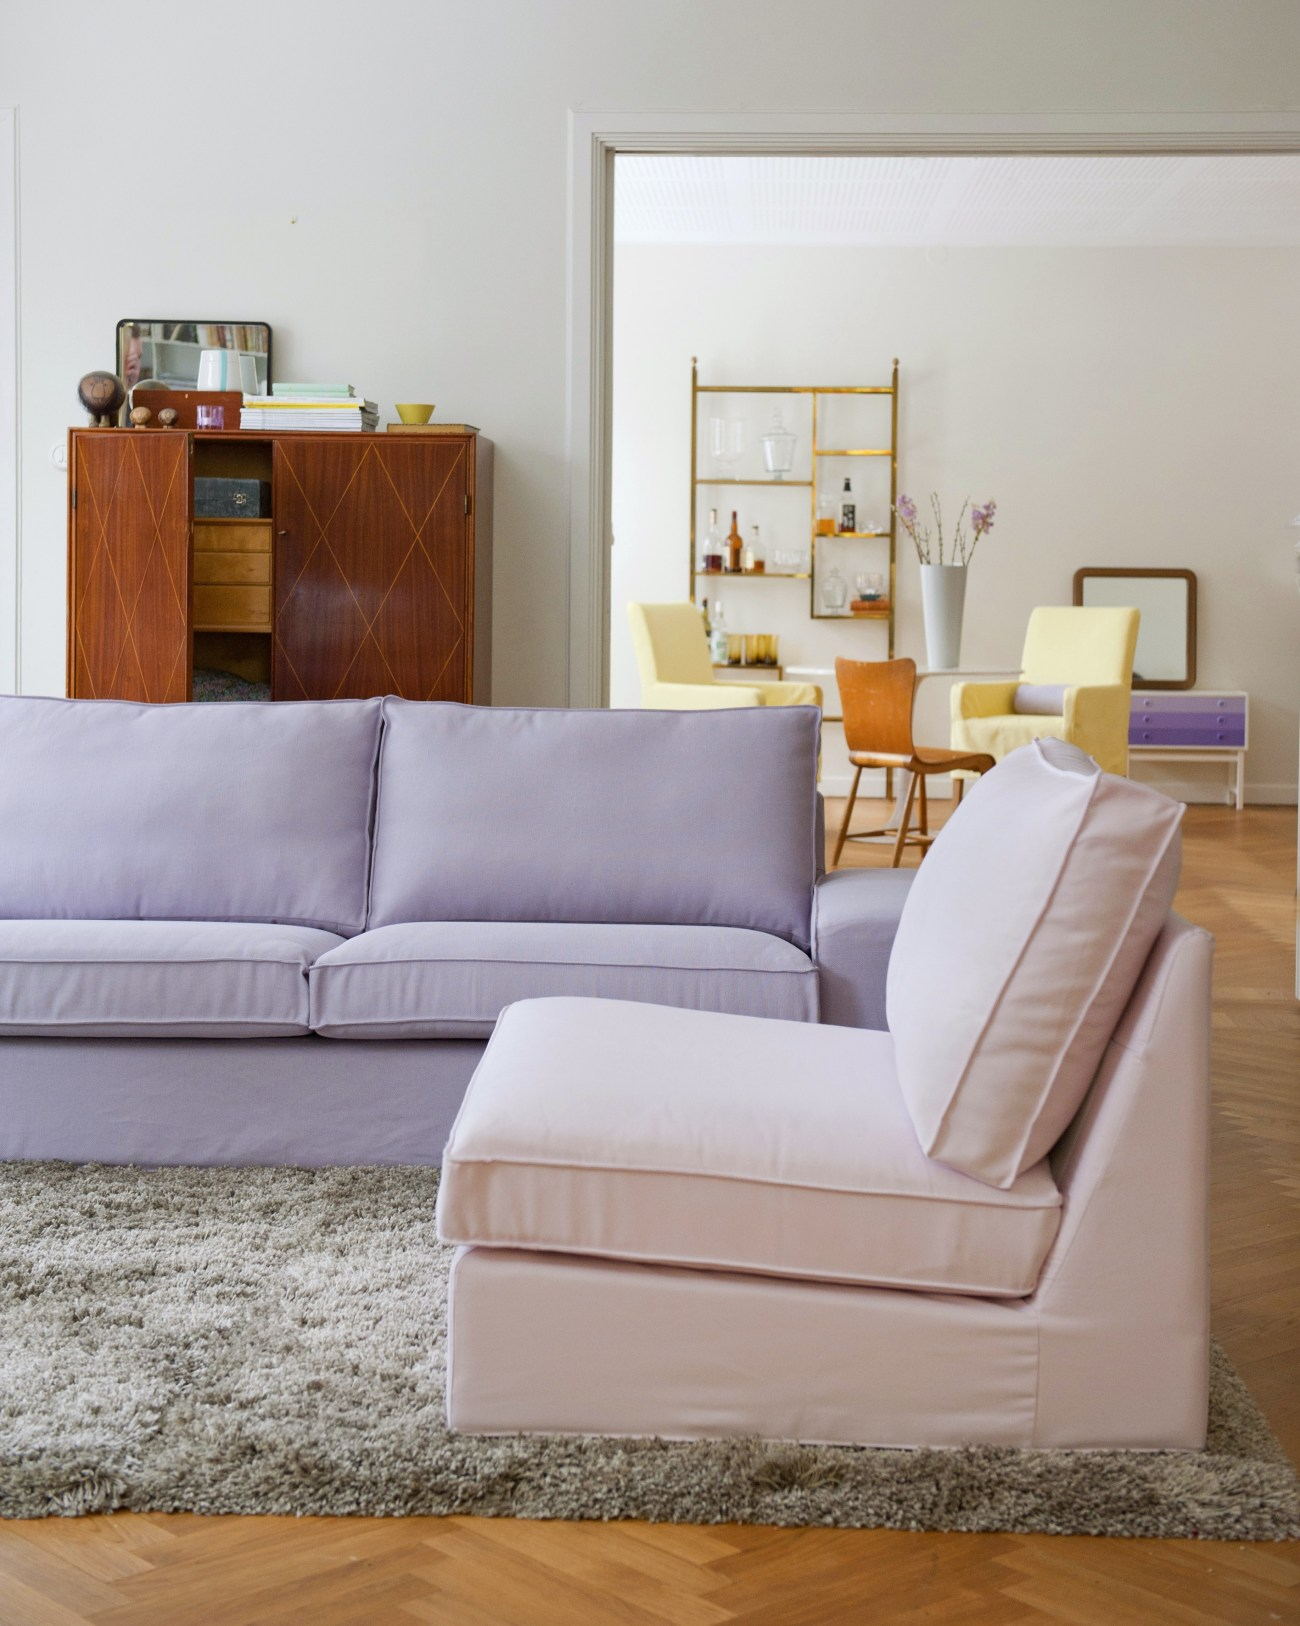 recycle sofa and add character